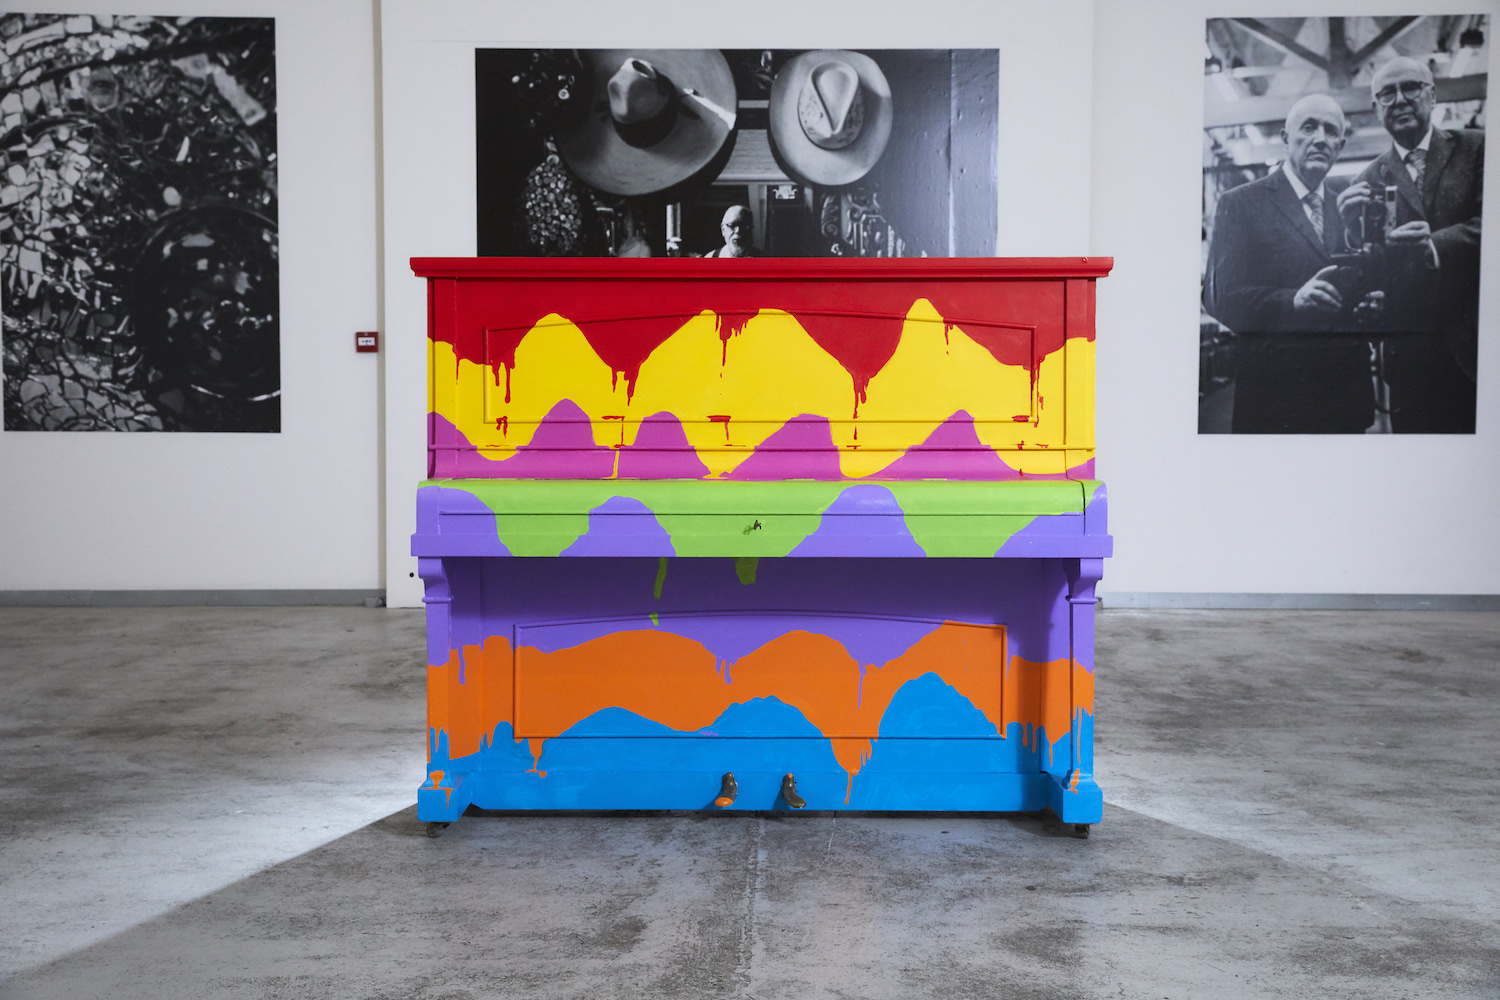 Express Yourself, The Sing for Hope London piano, designed and painted by Stuart Semple